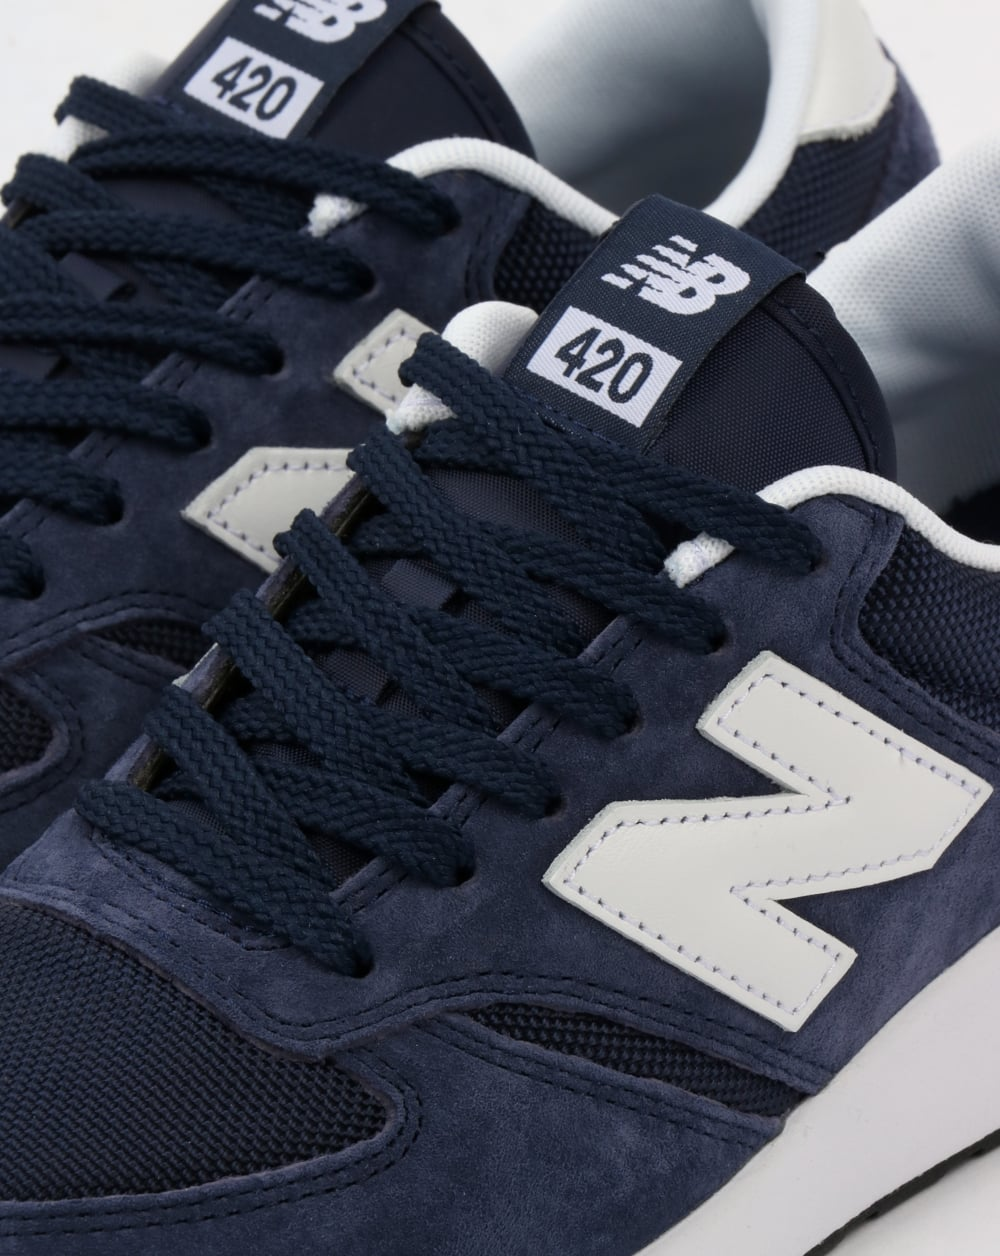 on sale 2626c 2277a New Balance 420 Re-Engineered Trainers Navy